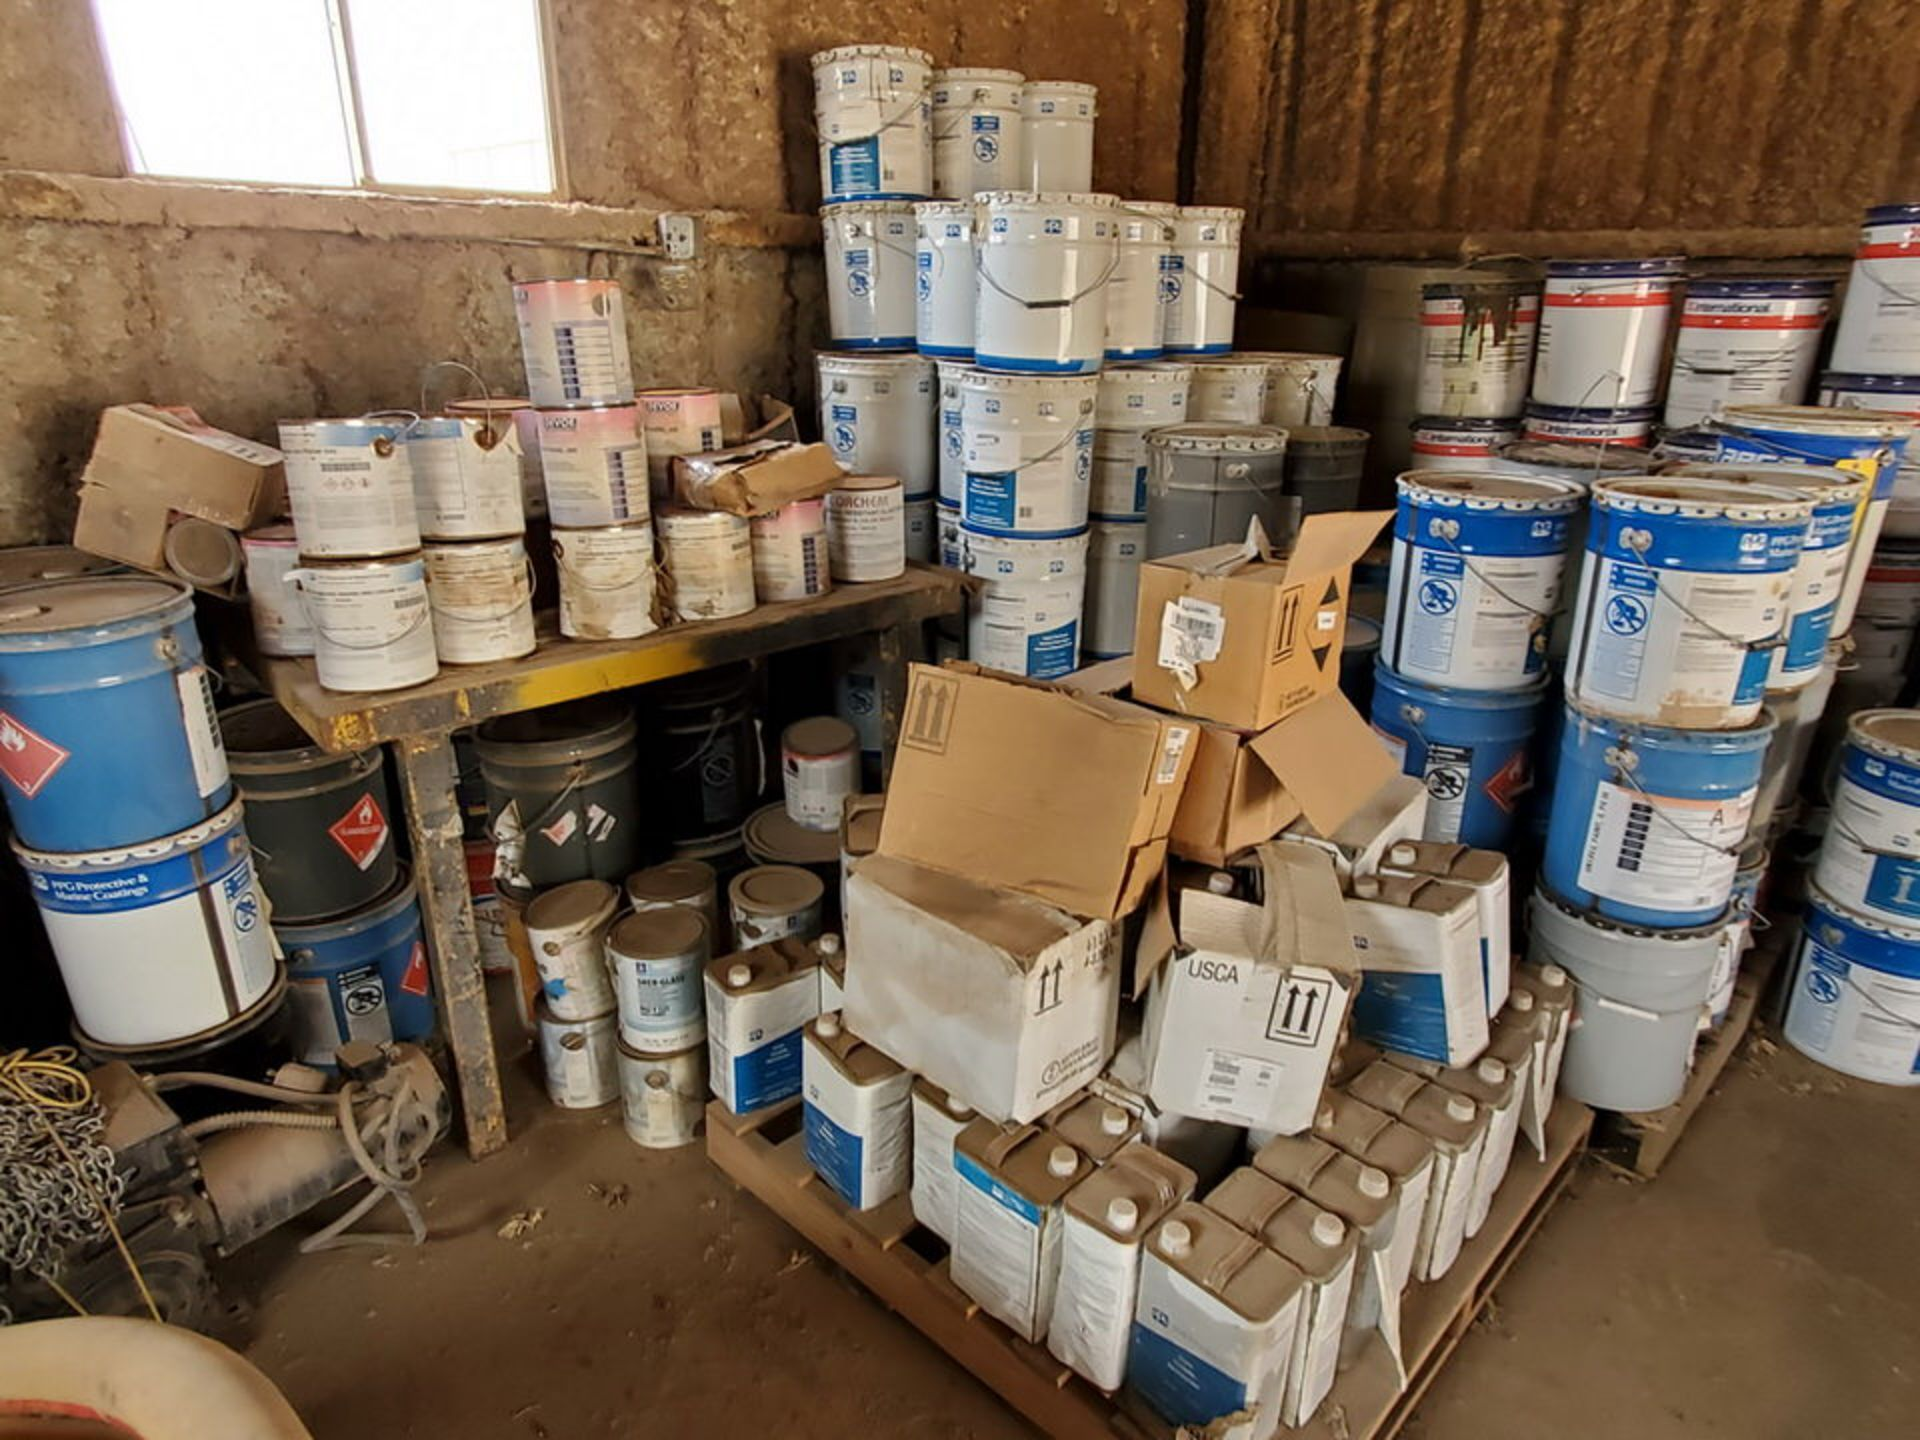 Assorted Paints & Marine Coatings Mfg's: PPG, Intl. & Other - Image 3 of 10